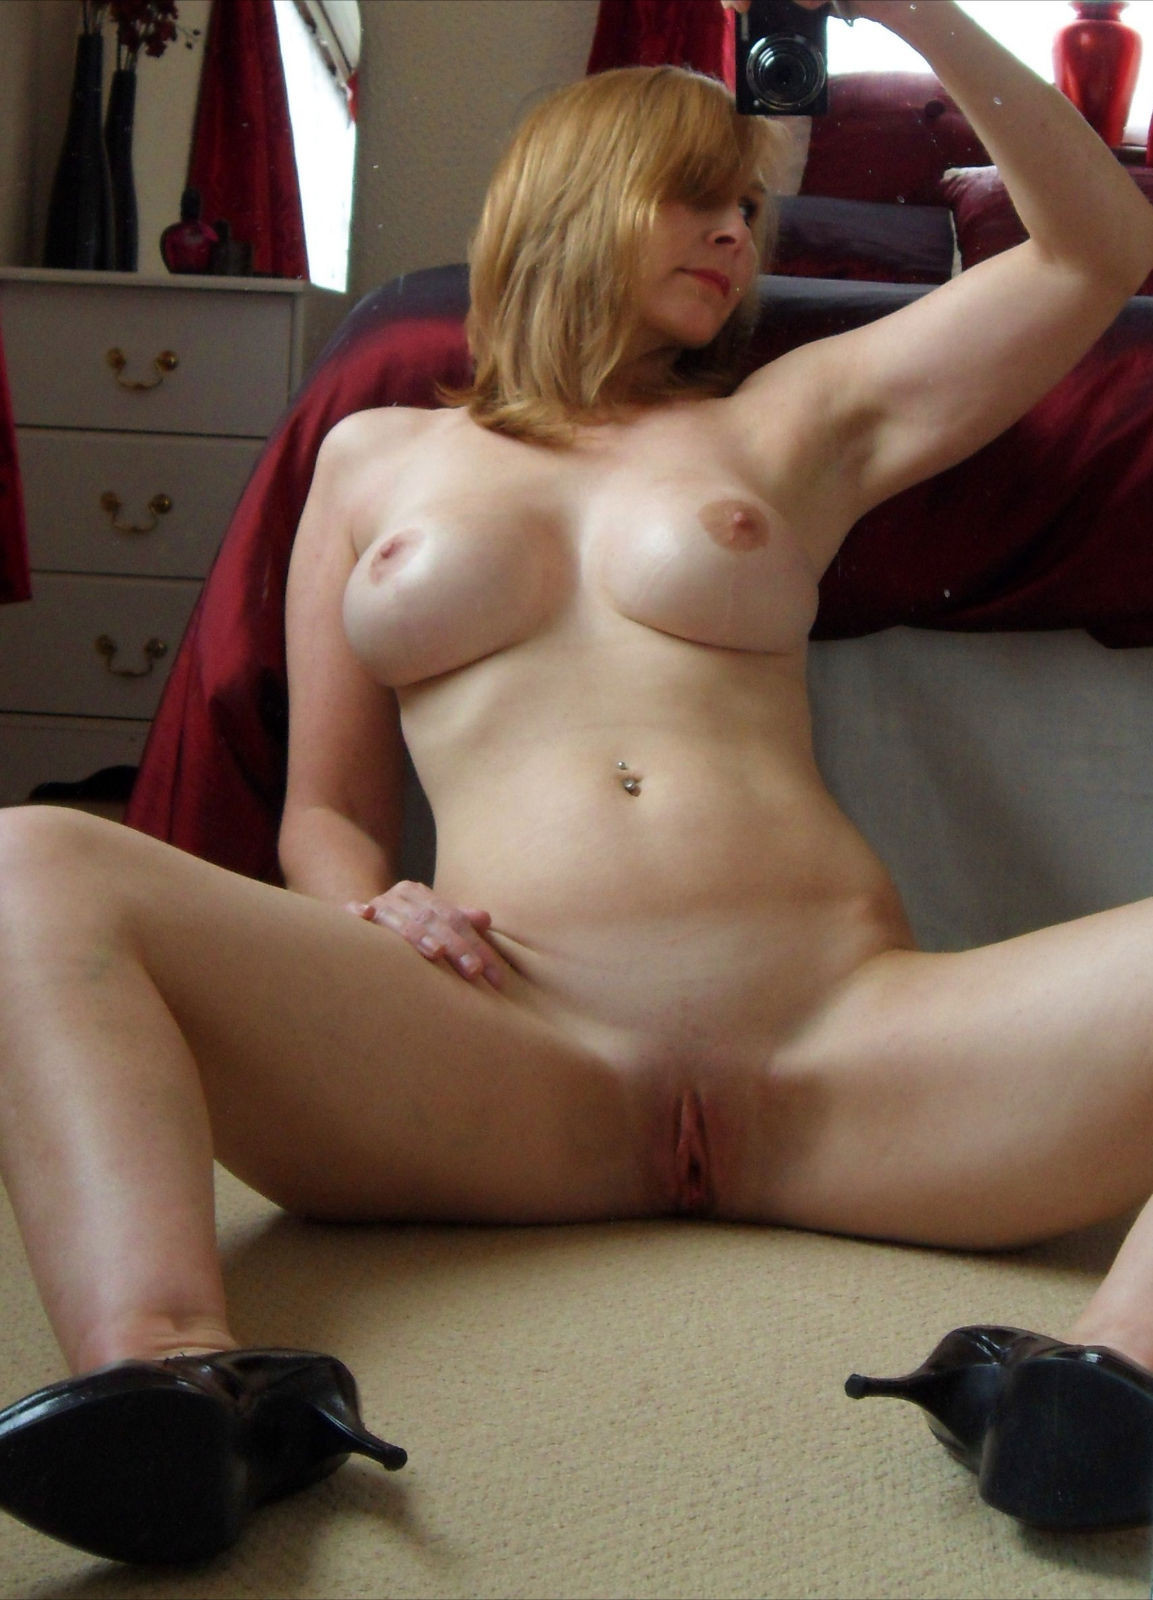 Anal fingering movie clips